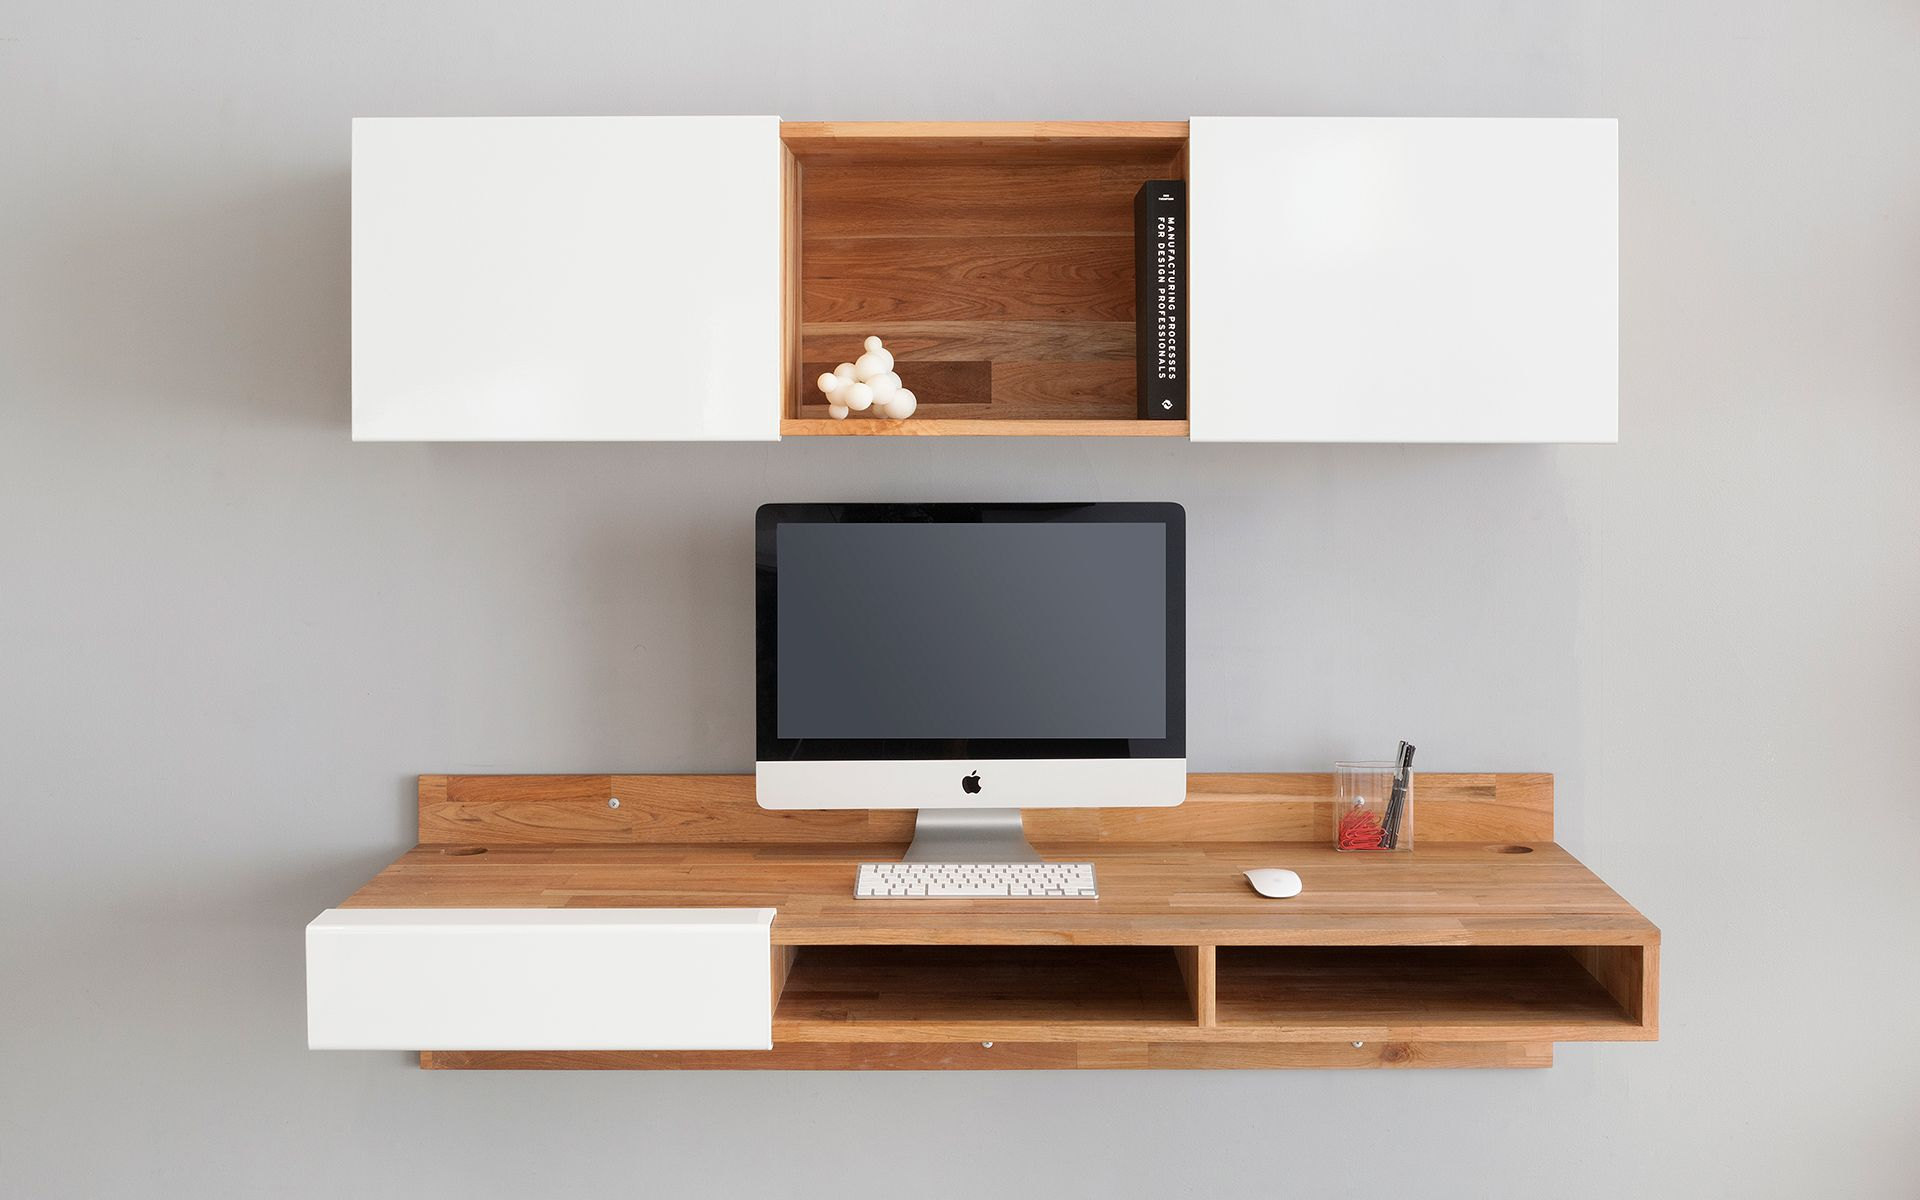 Mash Studios Lax Series Wall Mounted Desk Featured On Rypen Wall Mounted Desk Floating Desk Wall Mounted Shelves